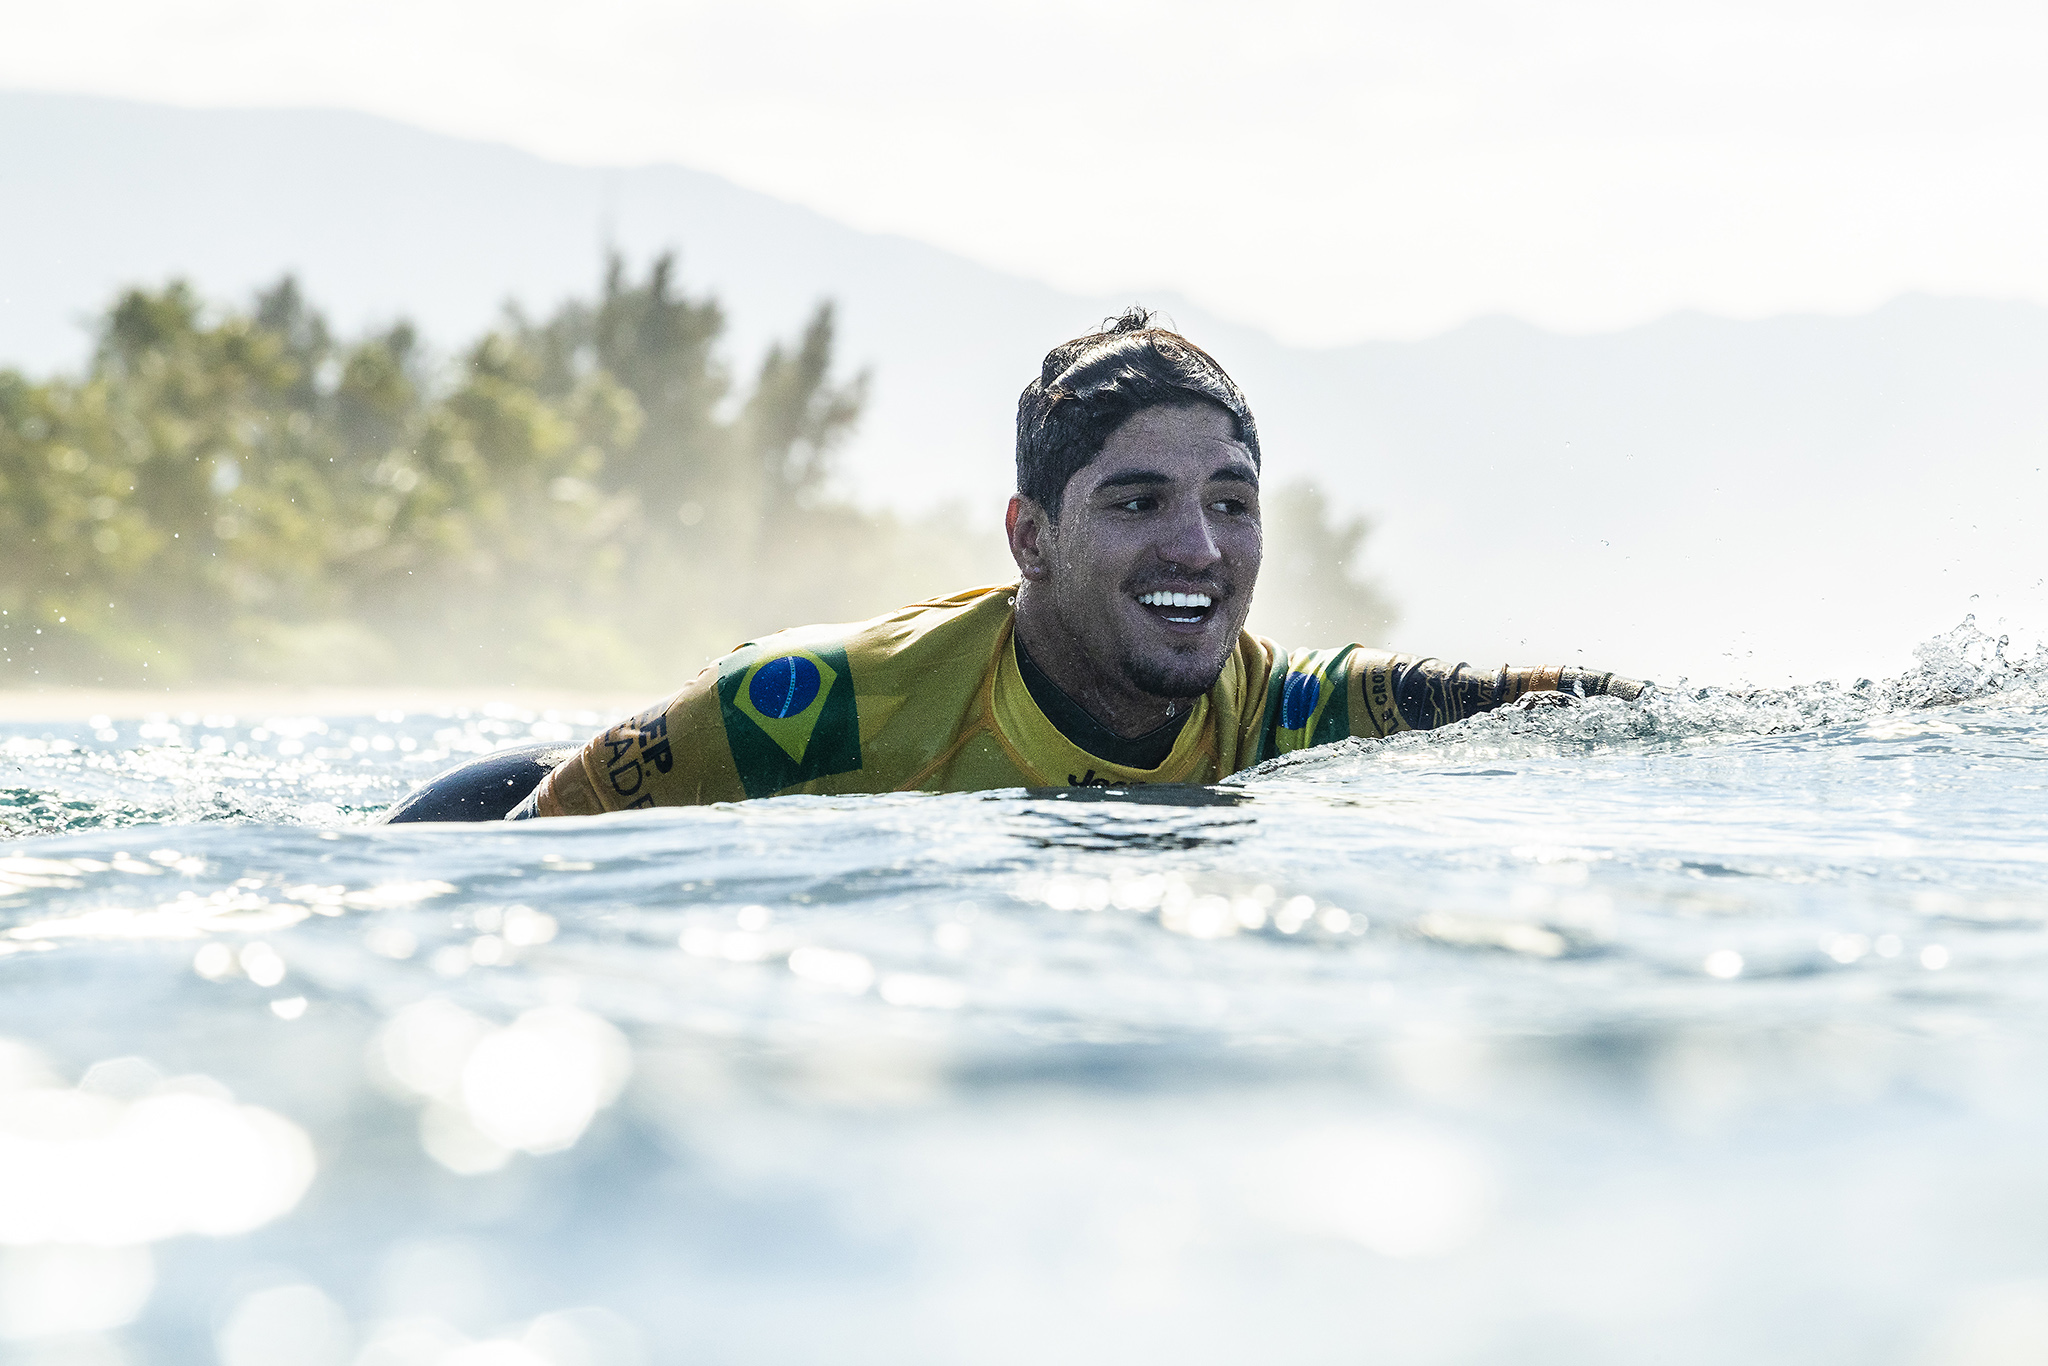 6275fcccf6 2014 World Champion Gabriel Medina (BRA) is now a 2X World Champion and his  first Pipe Masters title after winning the final of the 2018 Billabong Pipe  ...